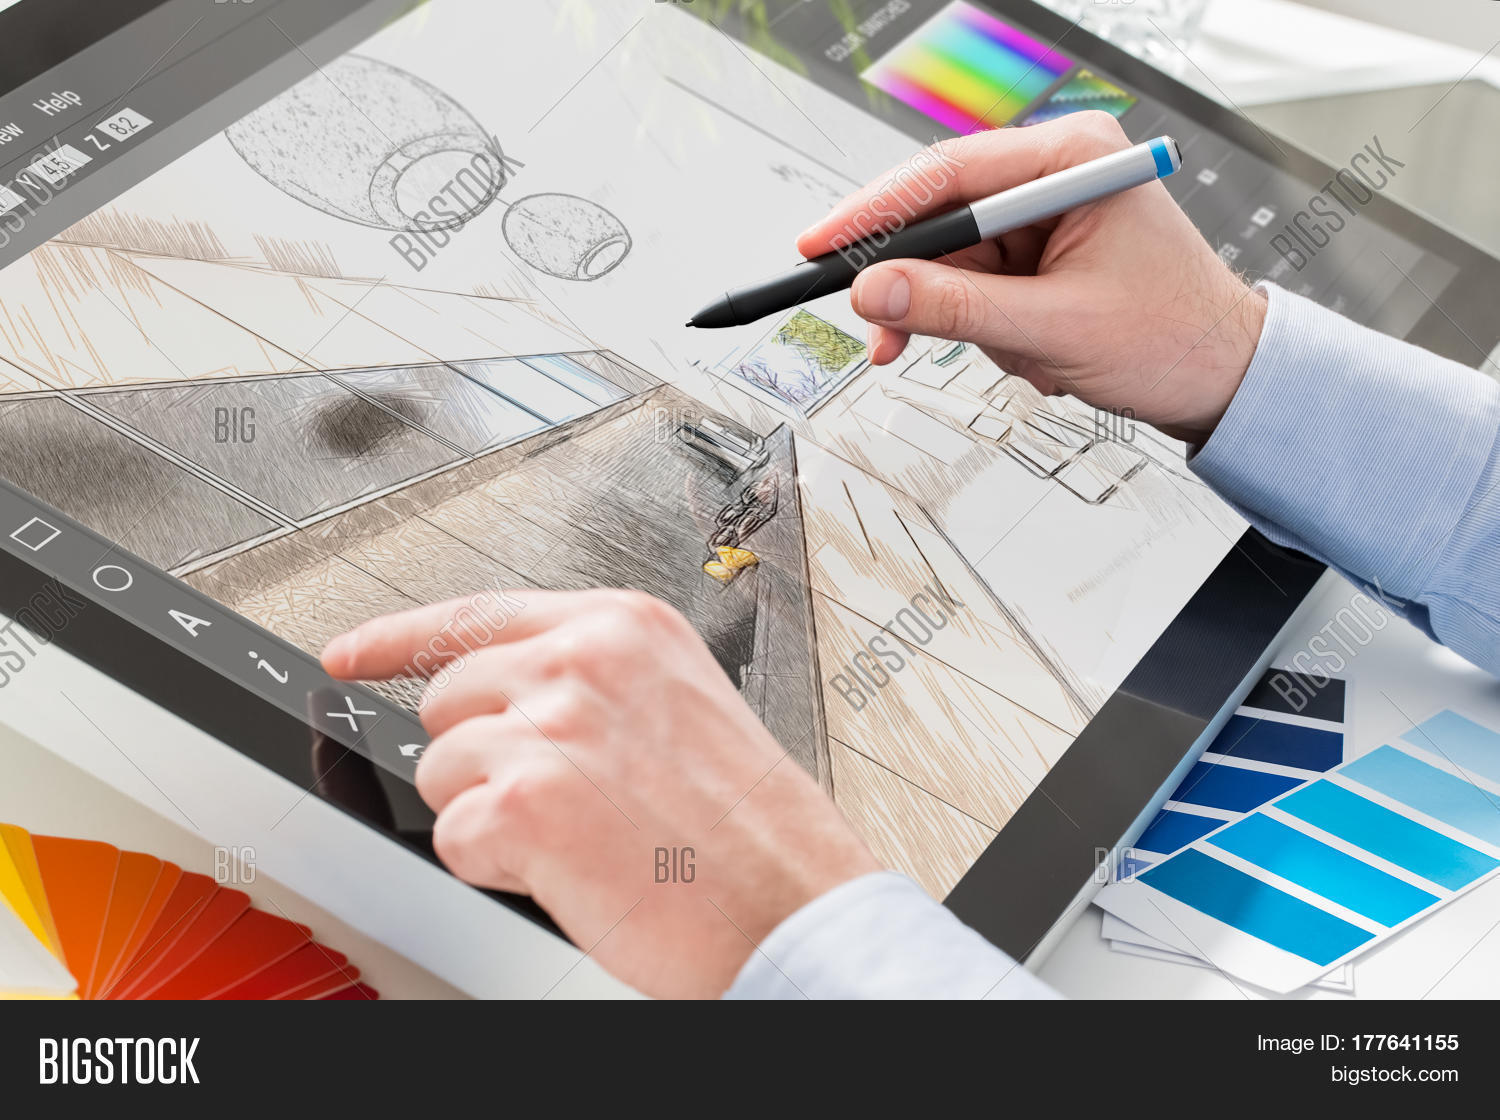 Designer graphic image photo free trial bigstock for Best tablet for interior designers